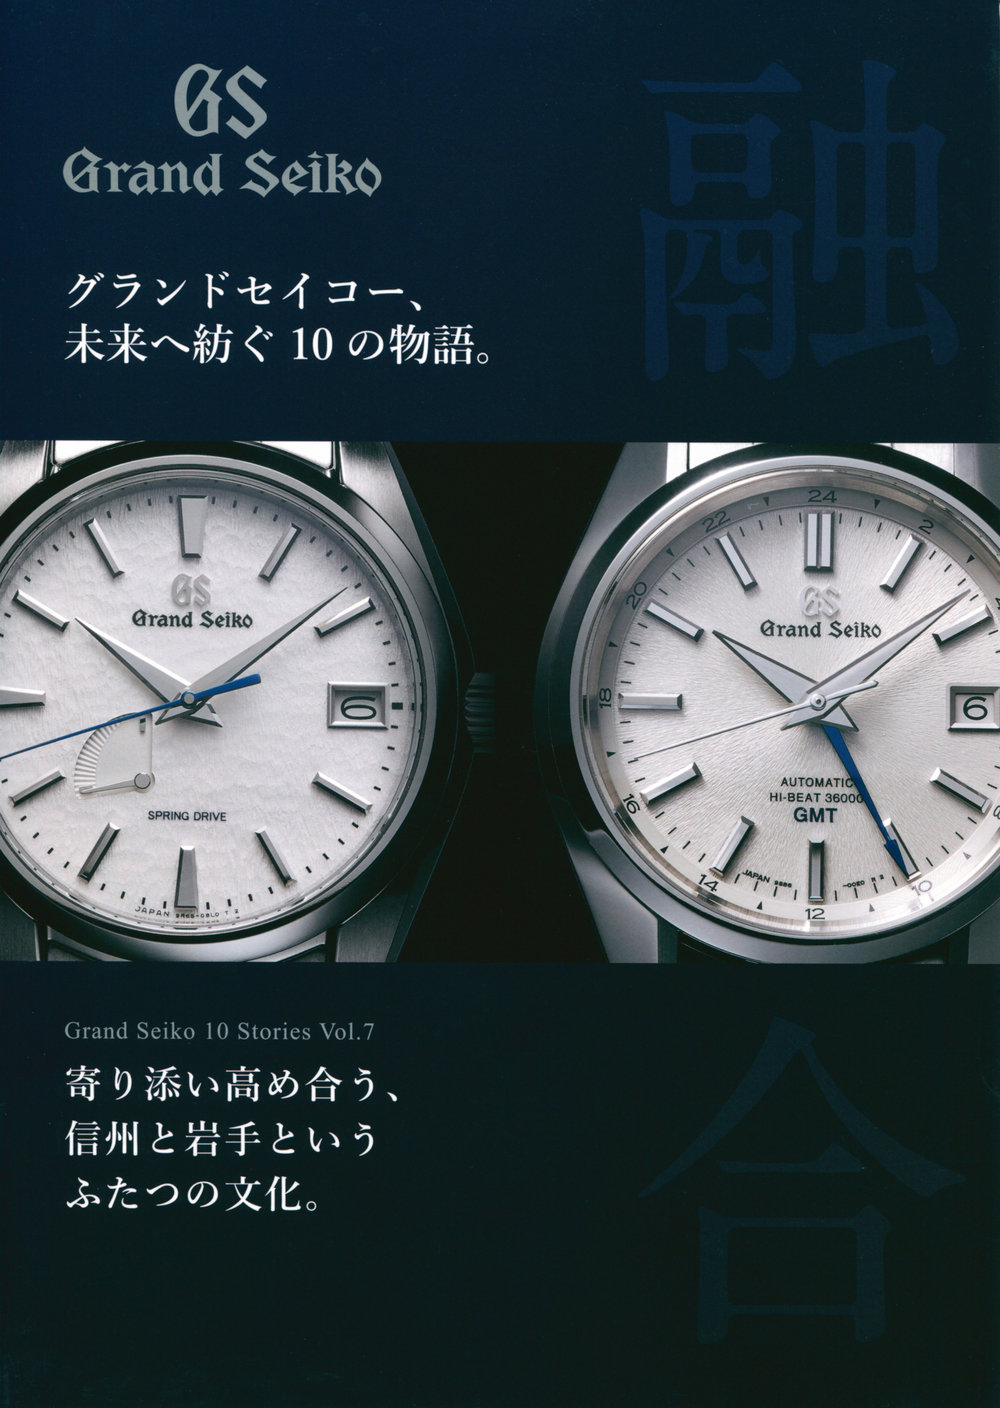 Grand Seiko 10 Stories Vol.7